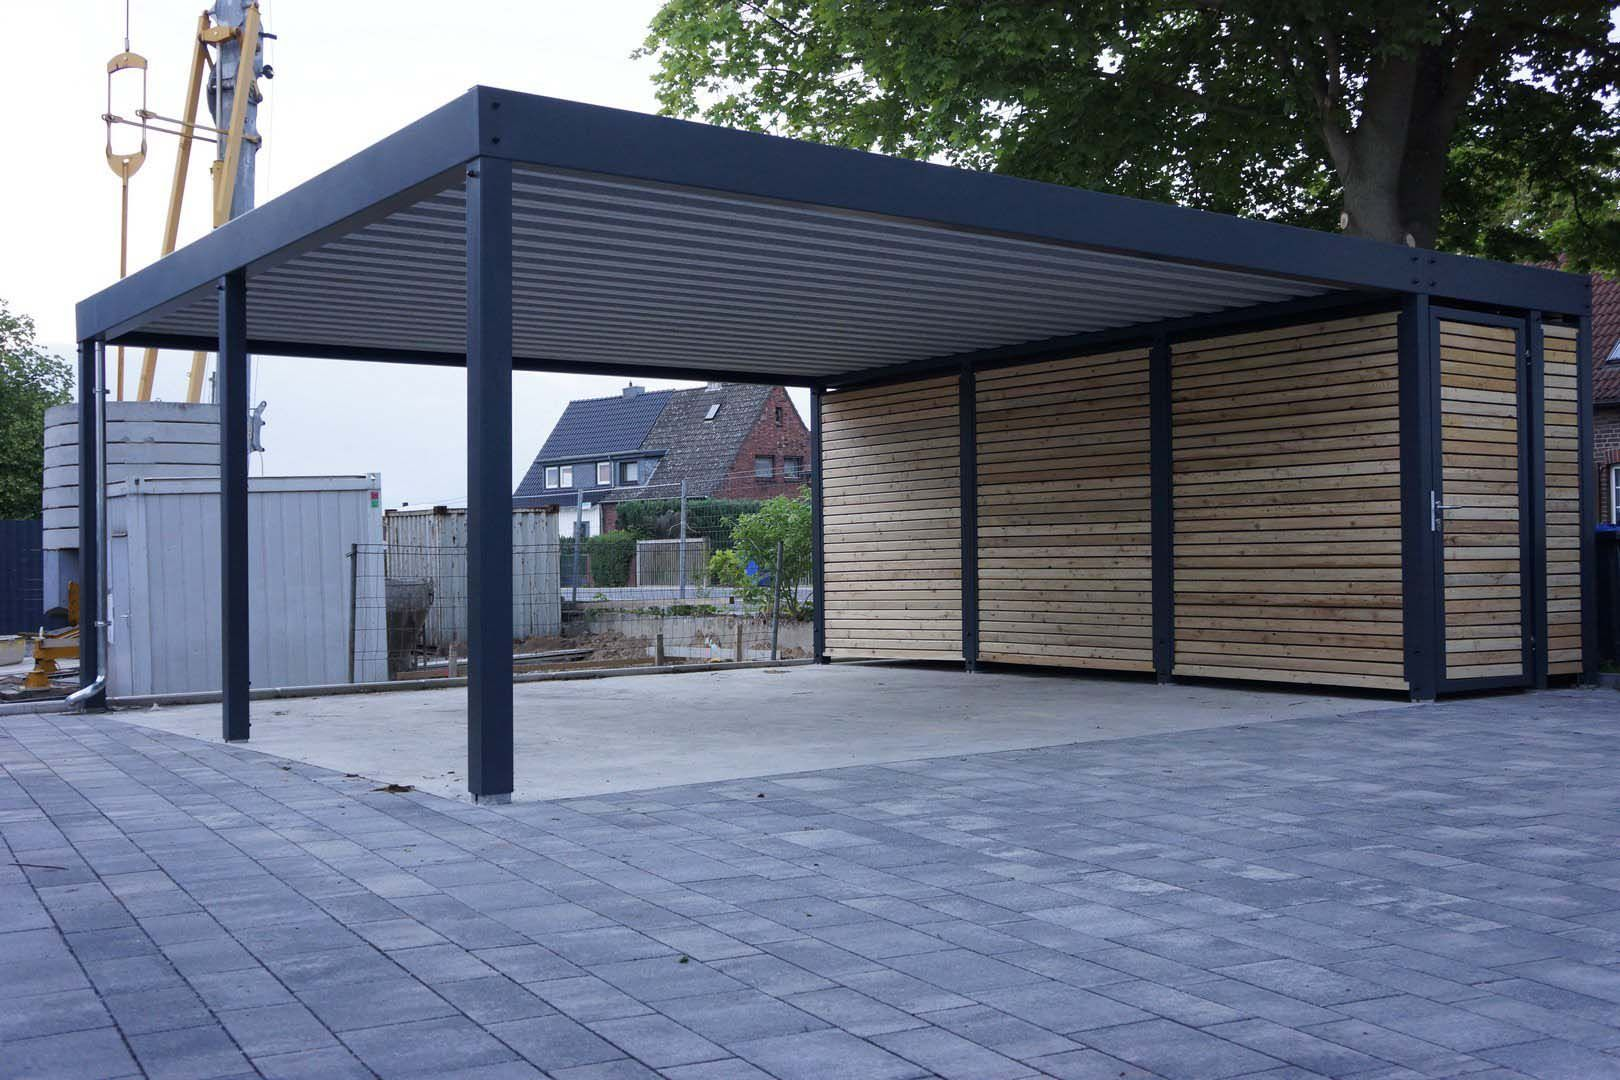 design metall carport aus holz stahl mit abstellraum n rnberg d metallcarport doppelcarport. Black Bedroom Furniture Sets. Home Design Ideas